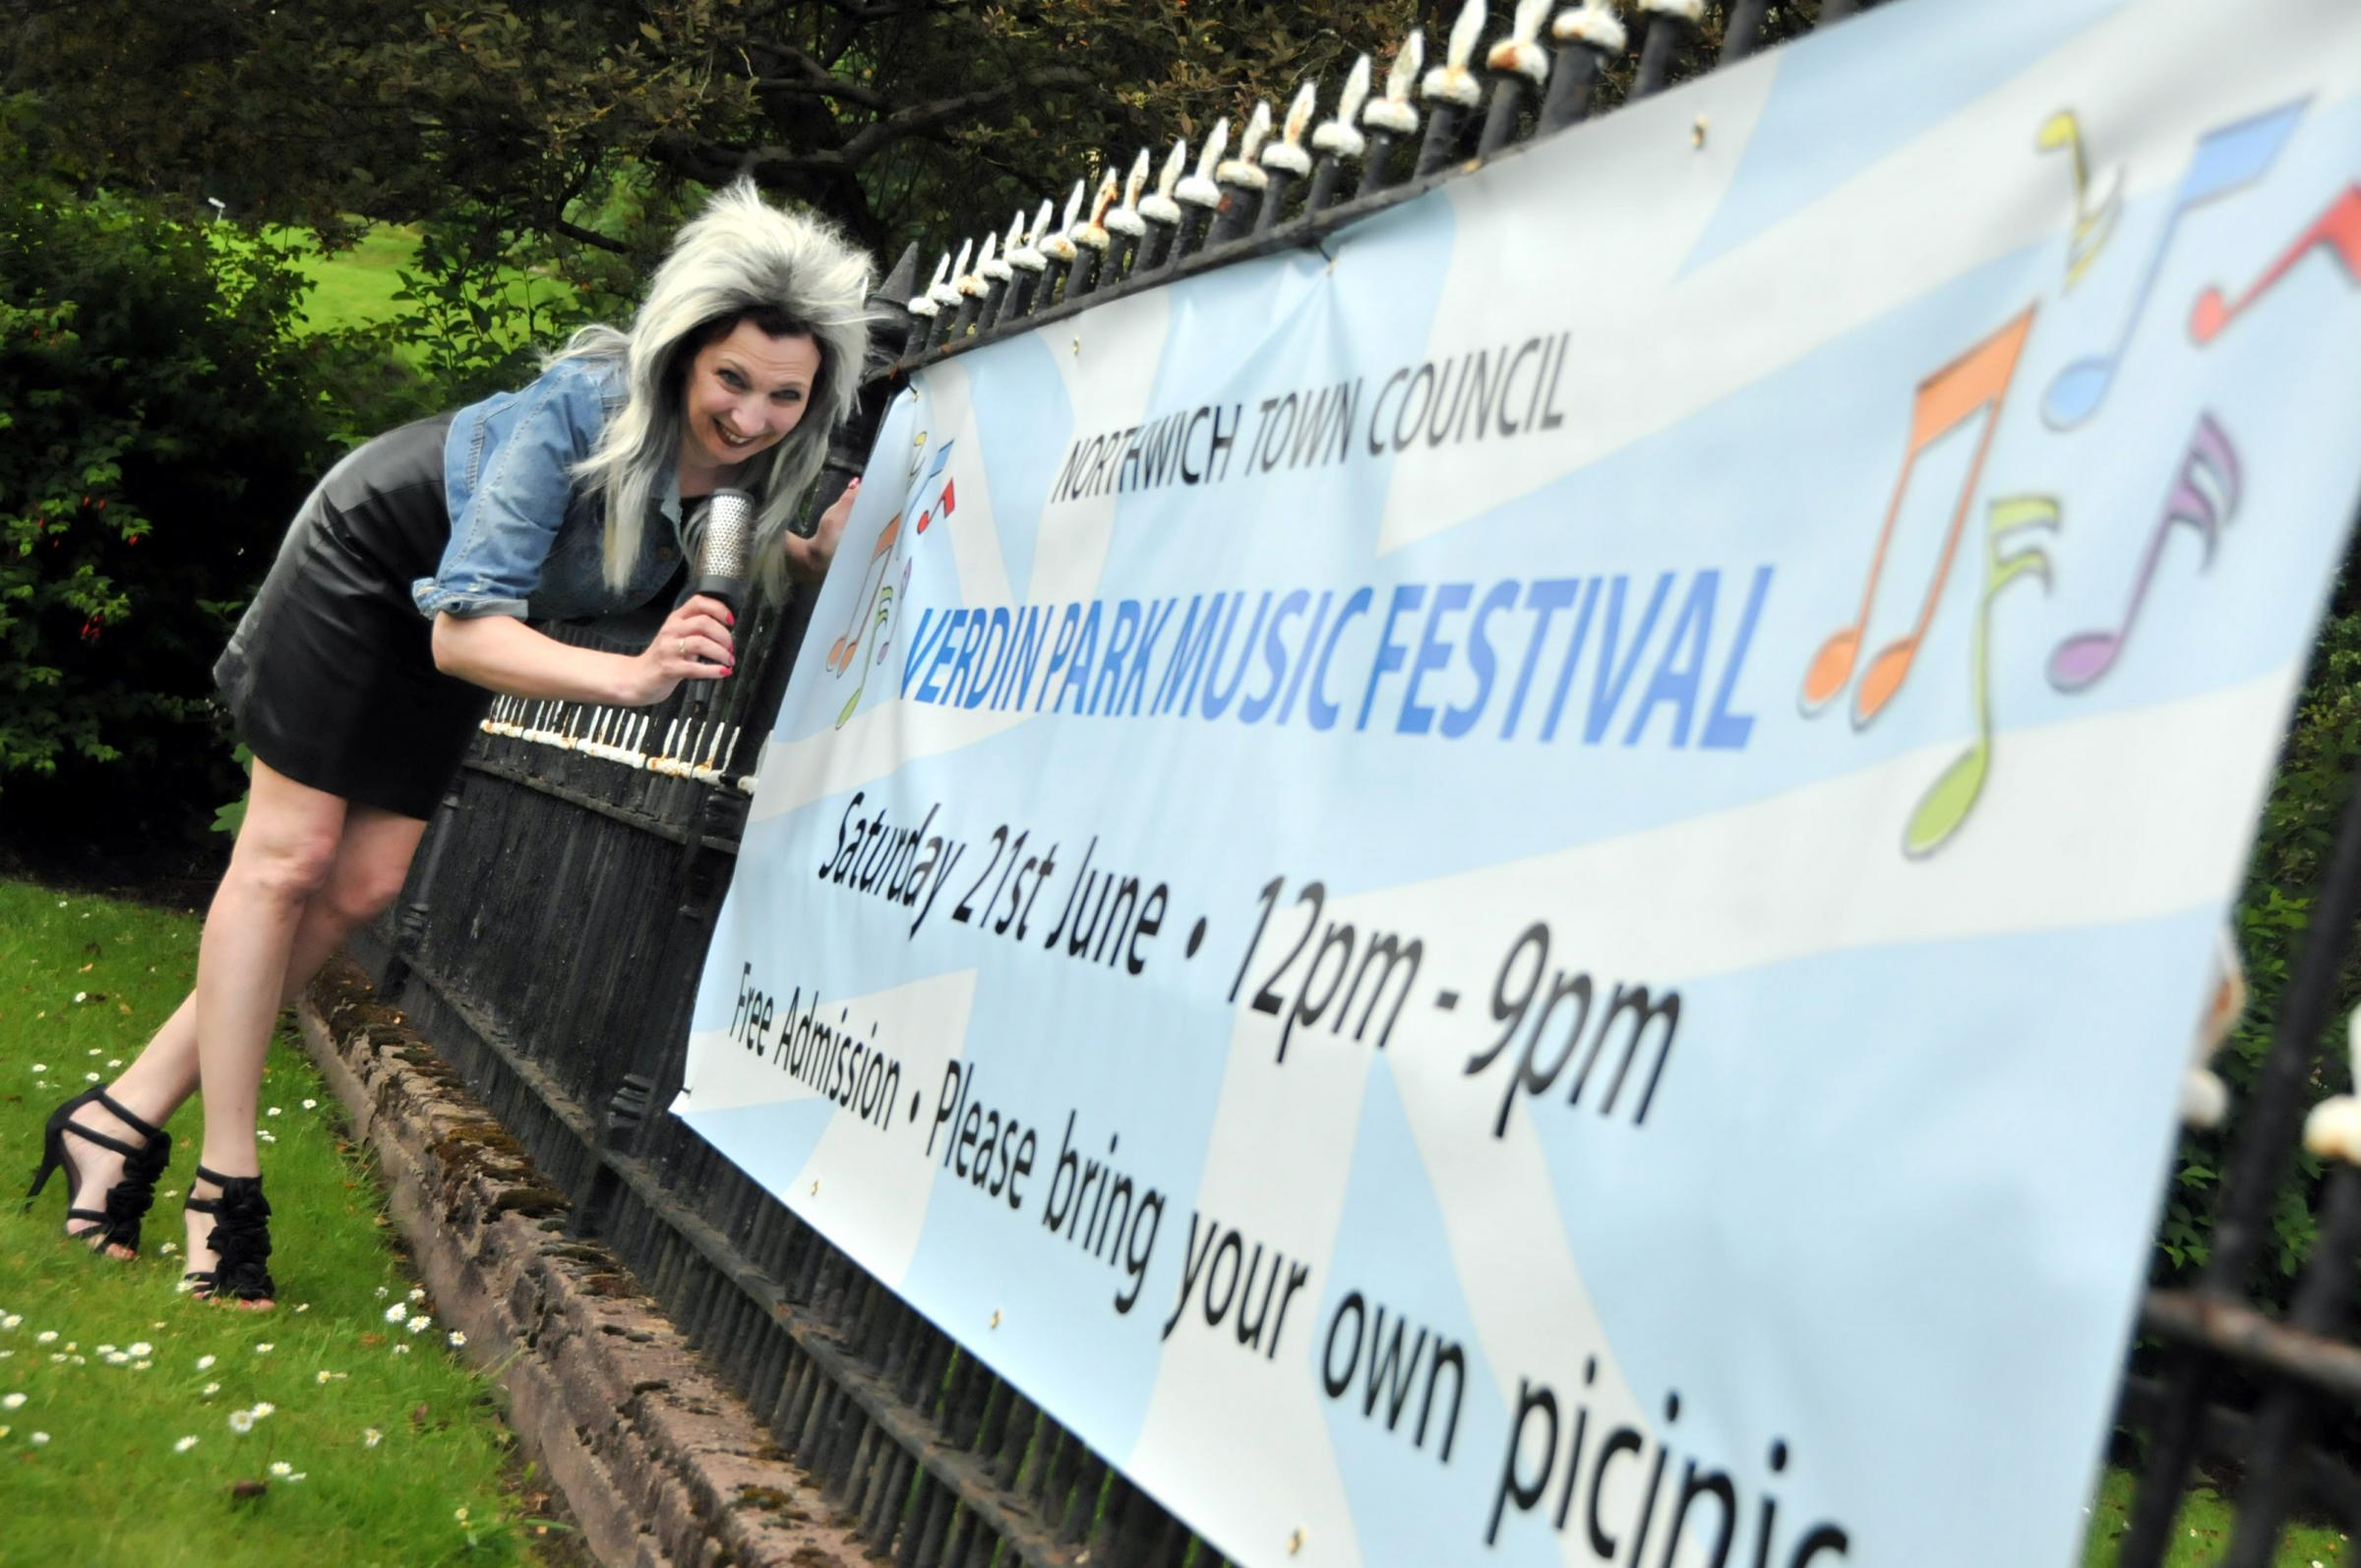 Town mayor Clr Alison Gerrard dons a Tina Turner wig and sings into her hairbrush as she gets ready for the Verdin Park Music Festival on Saturday.